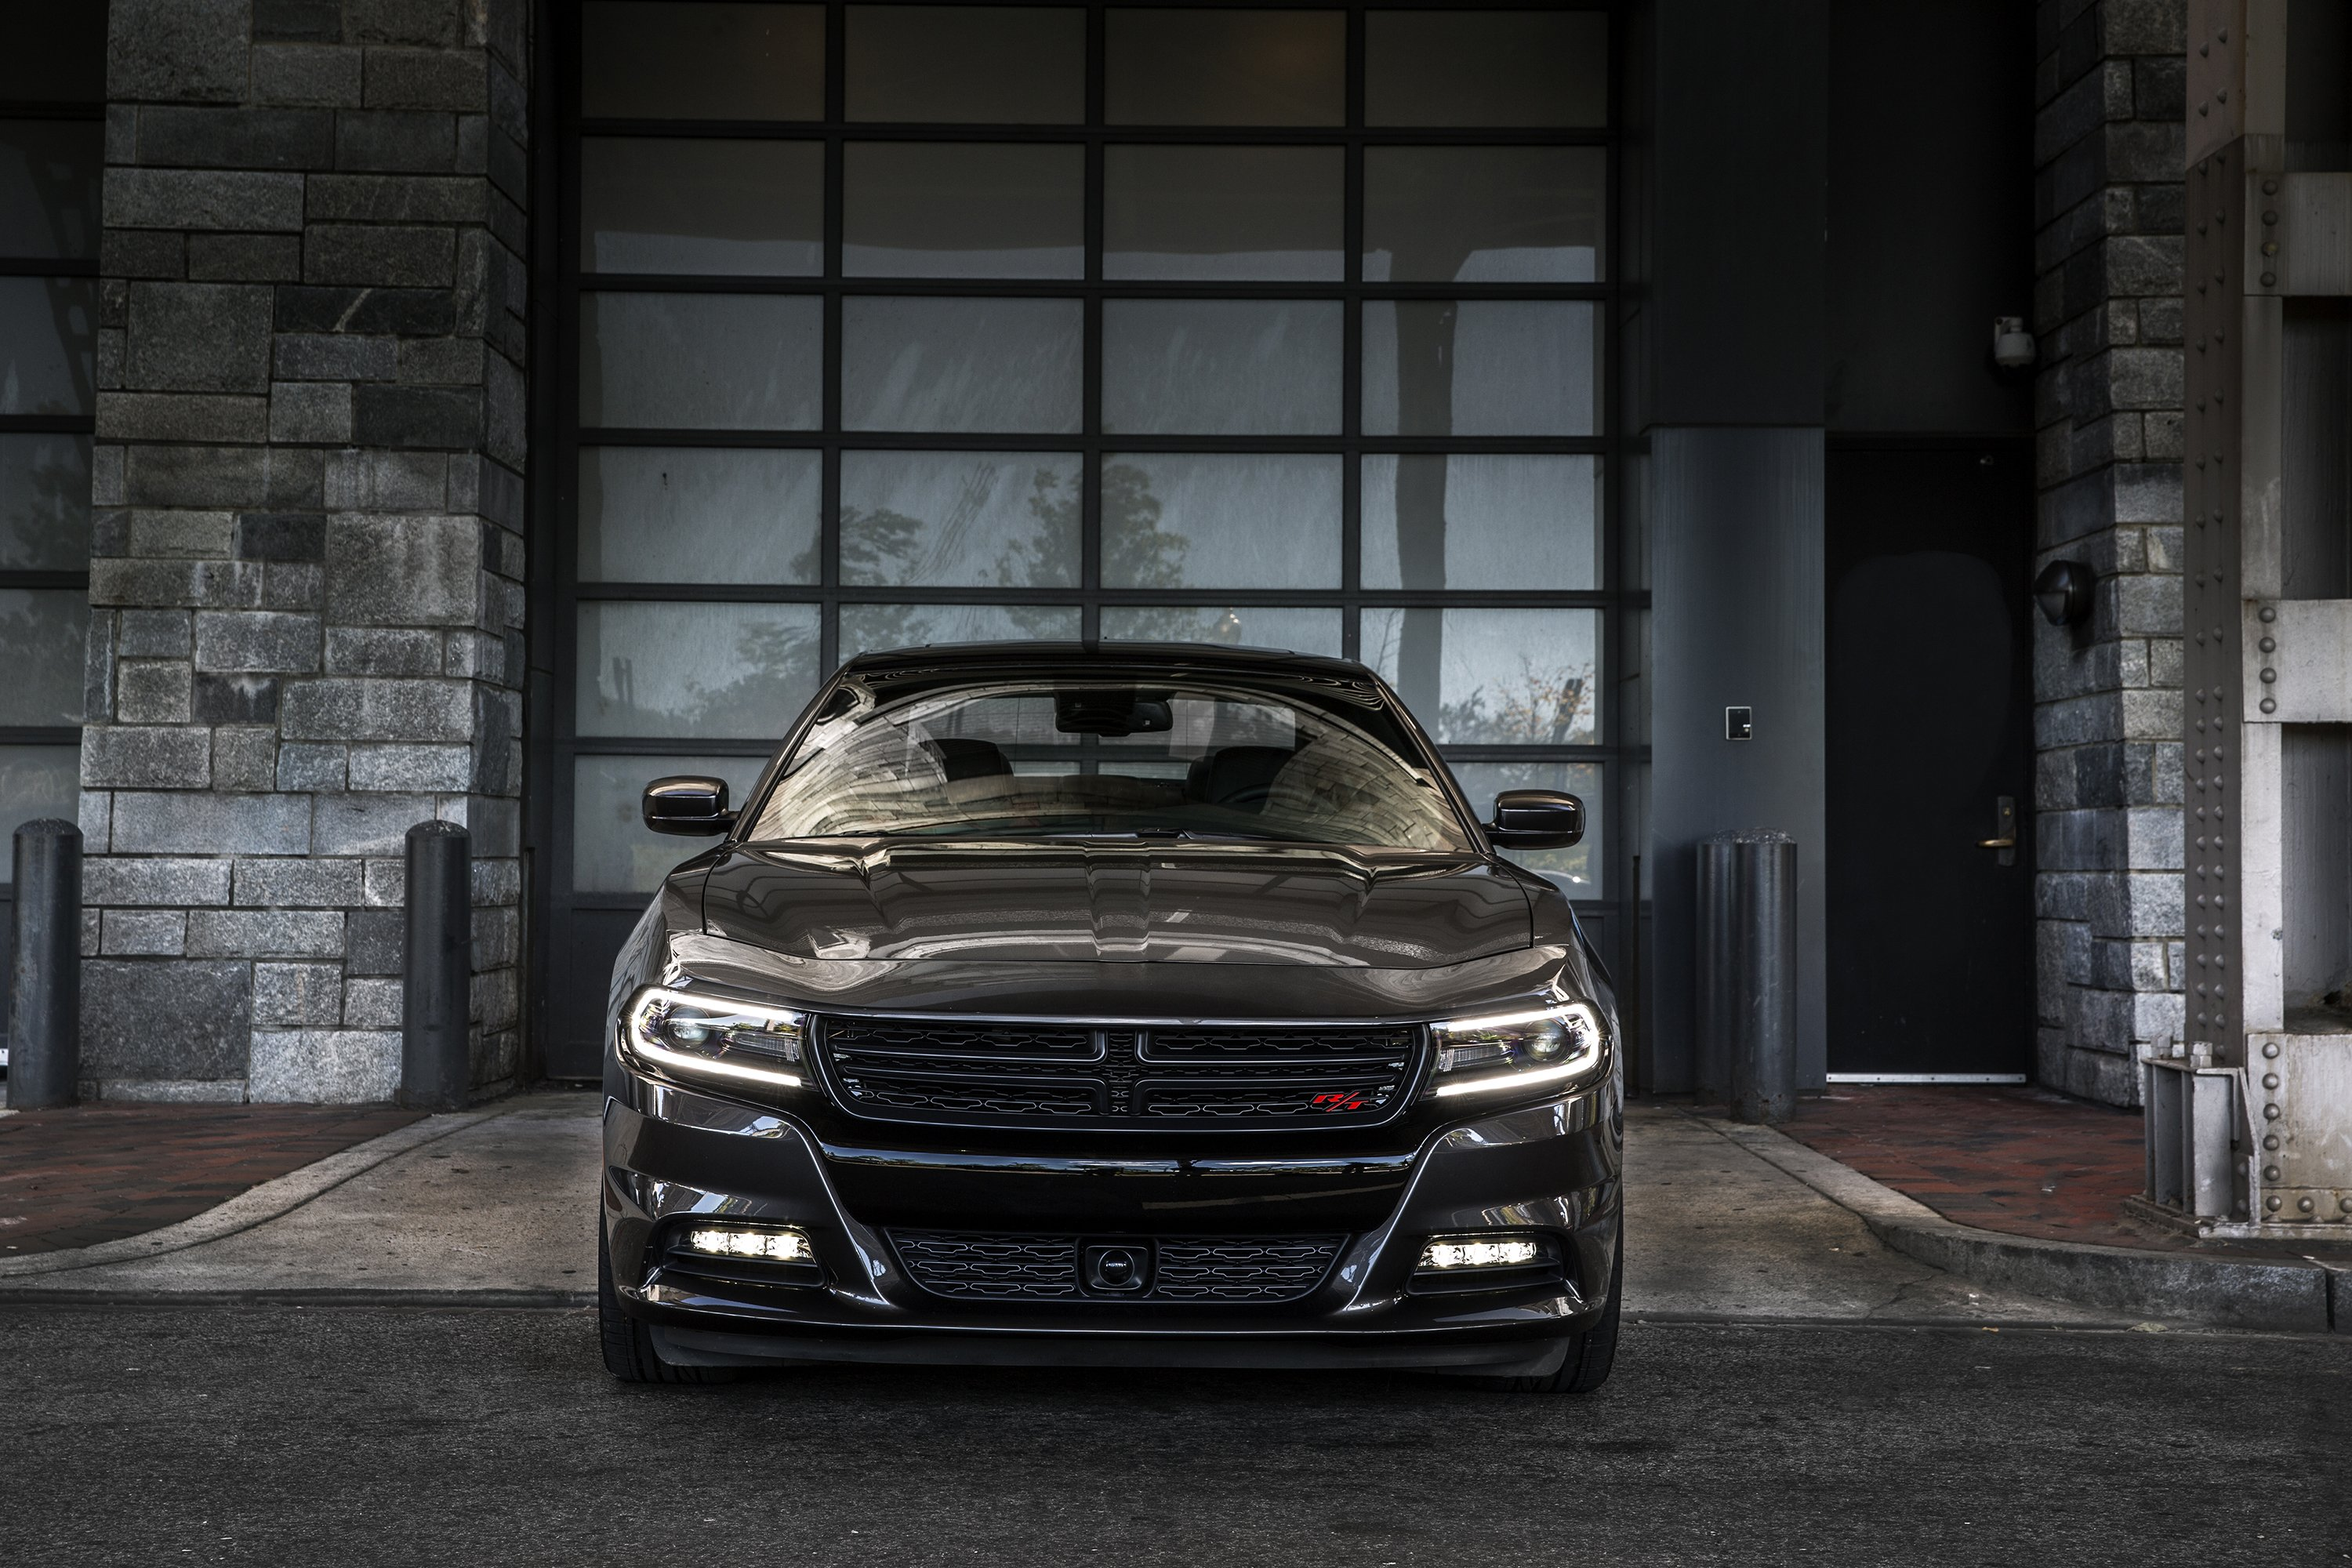 2015 Dodge Charger R-T (L-D) muscle wallpaper | 3000x2000 | 504207 ...